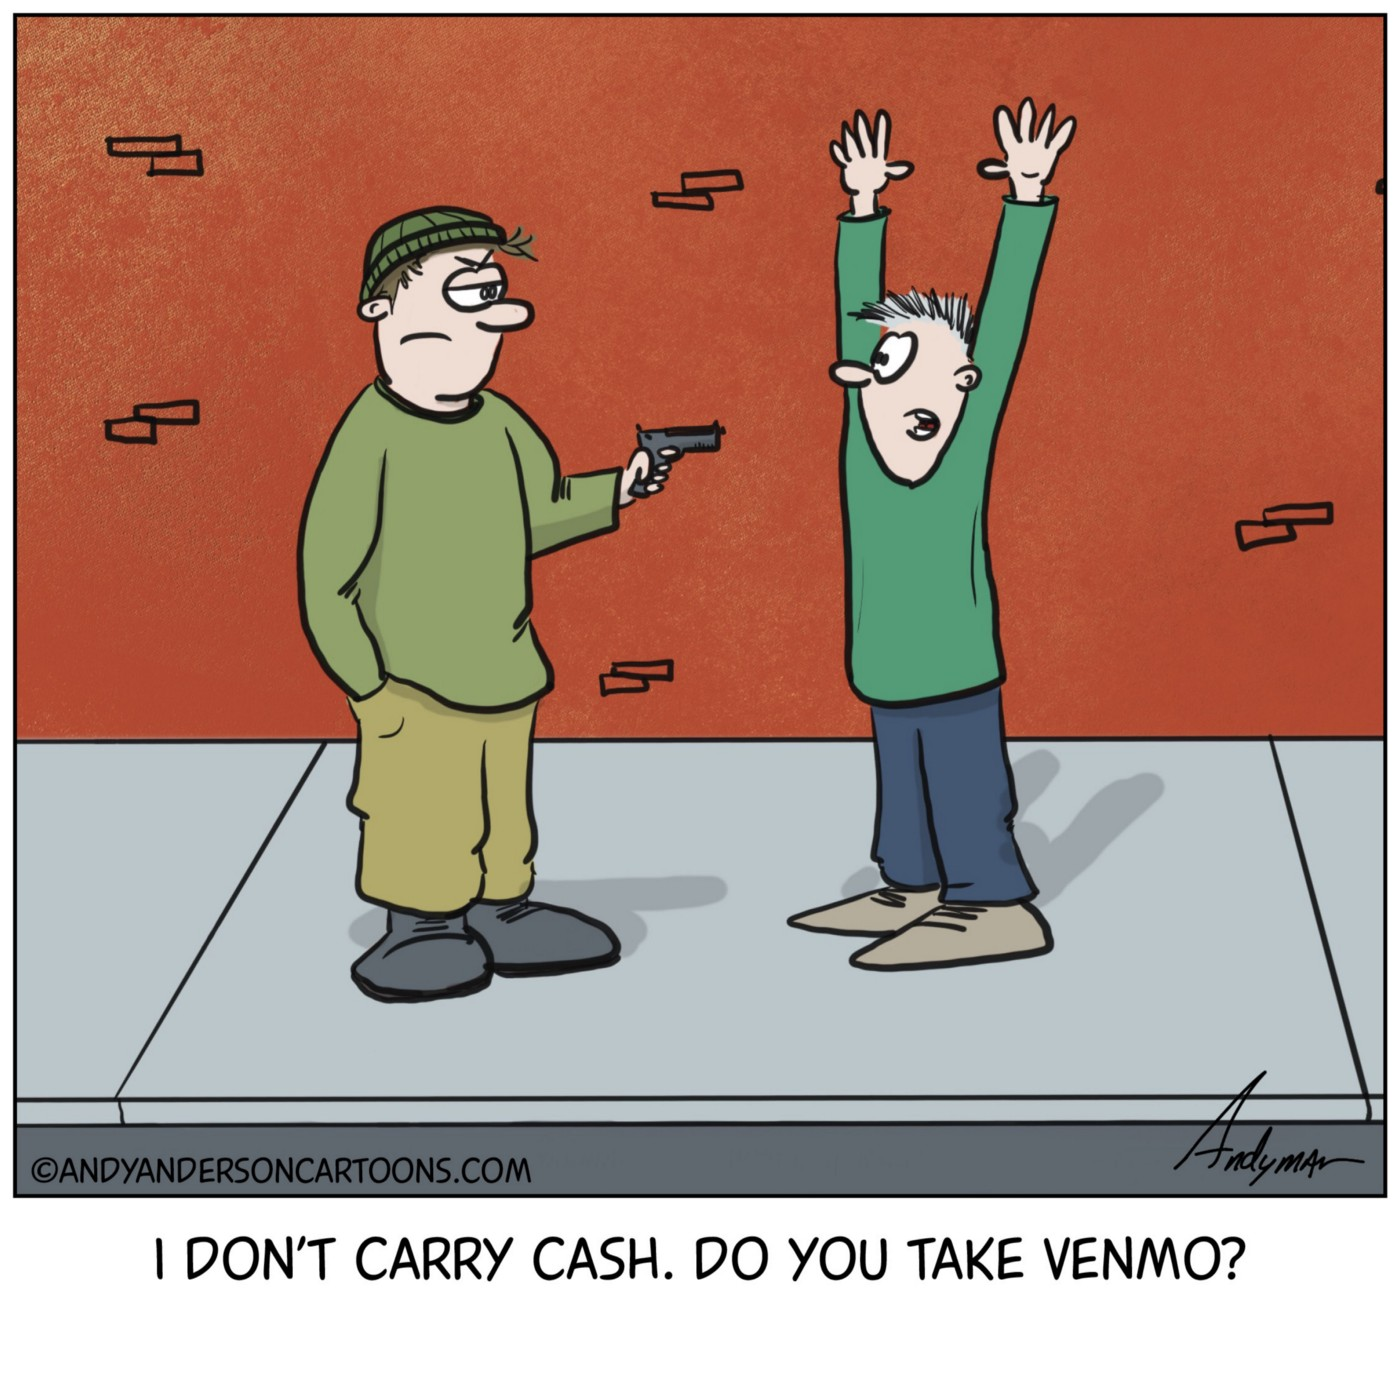 Cartoon about being robbed but offering Venmo instead of cash by Andy Anderson